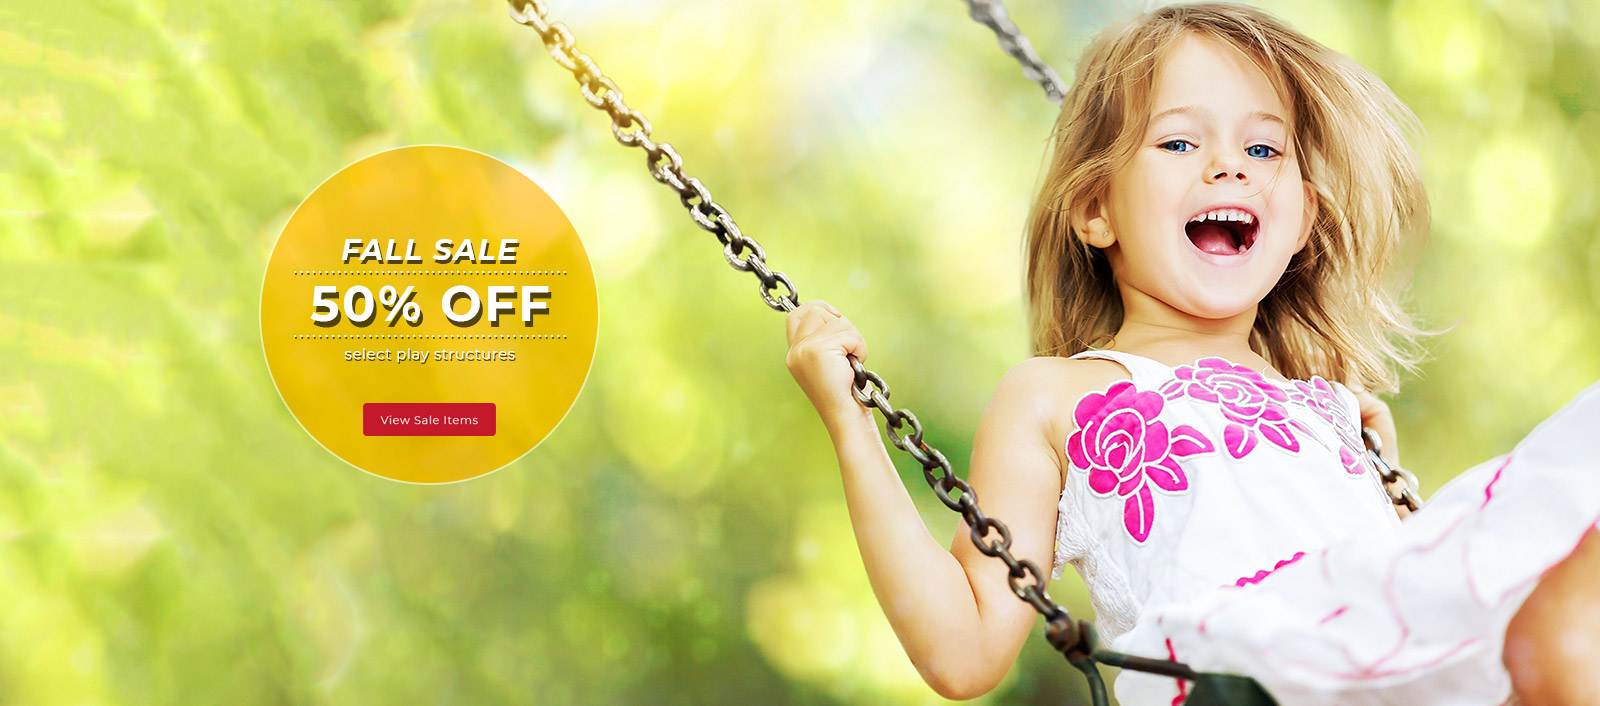 50% Off - Commercial Playgrpound Equipment Sale